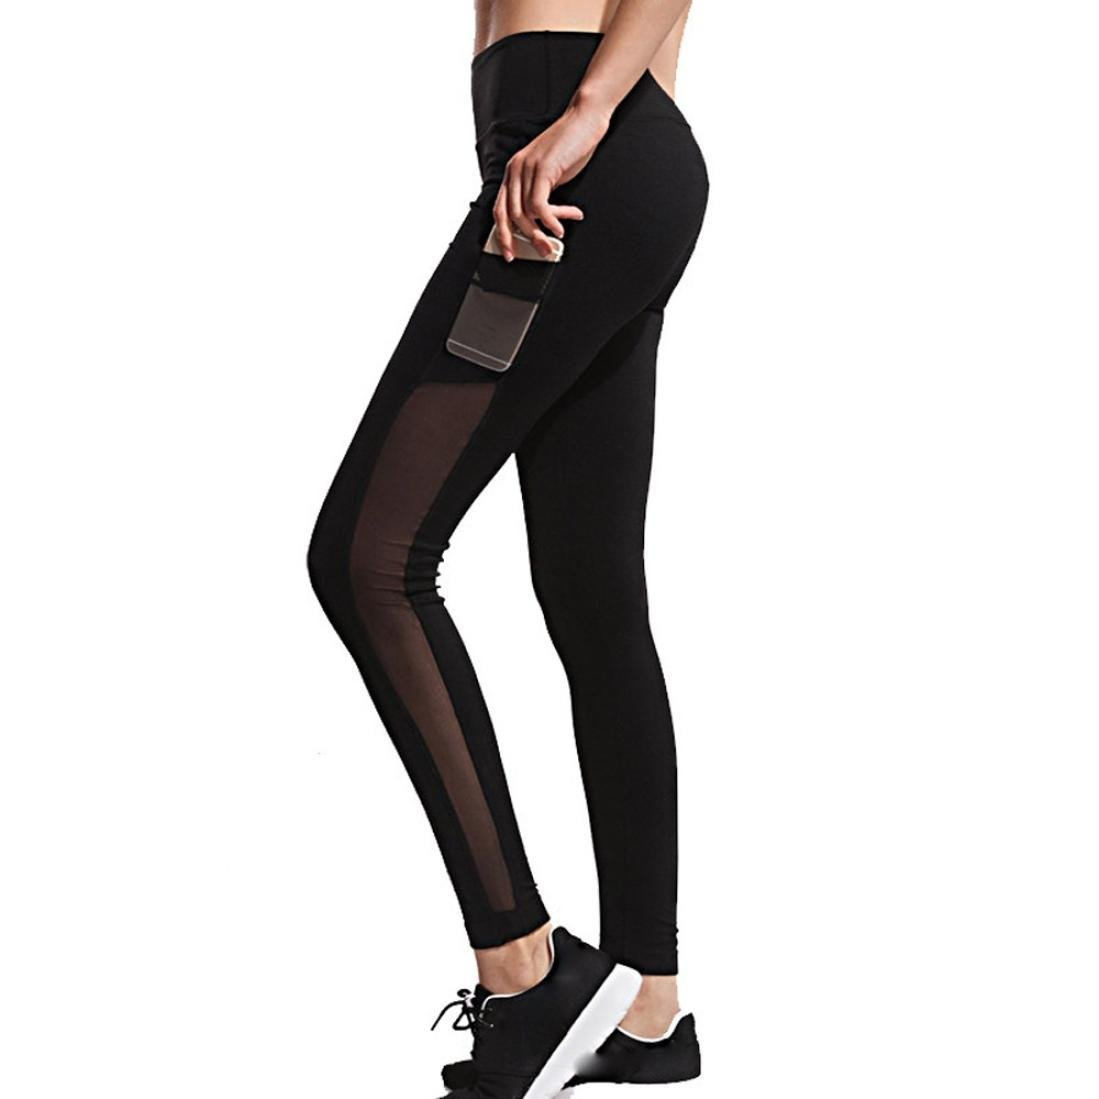 Women Leggings, Gillberry Women Sports Trousers Athletic Gym Workout Fitness Yoga Leggings Pants For Women (Black X, S)